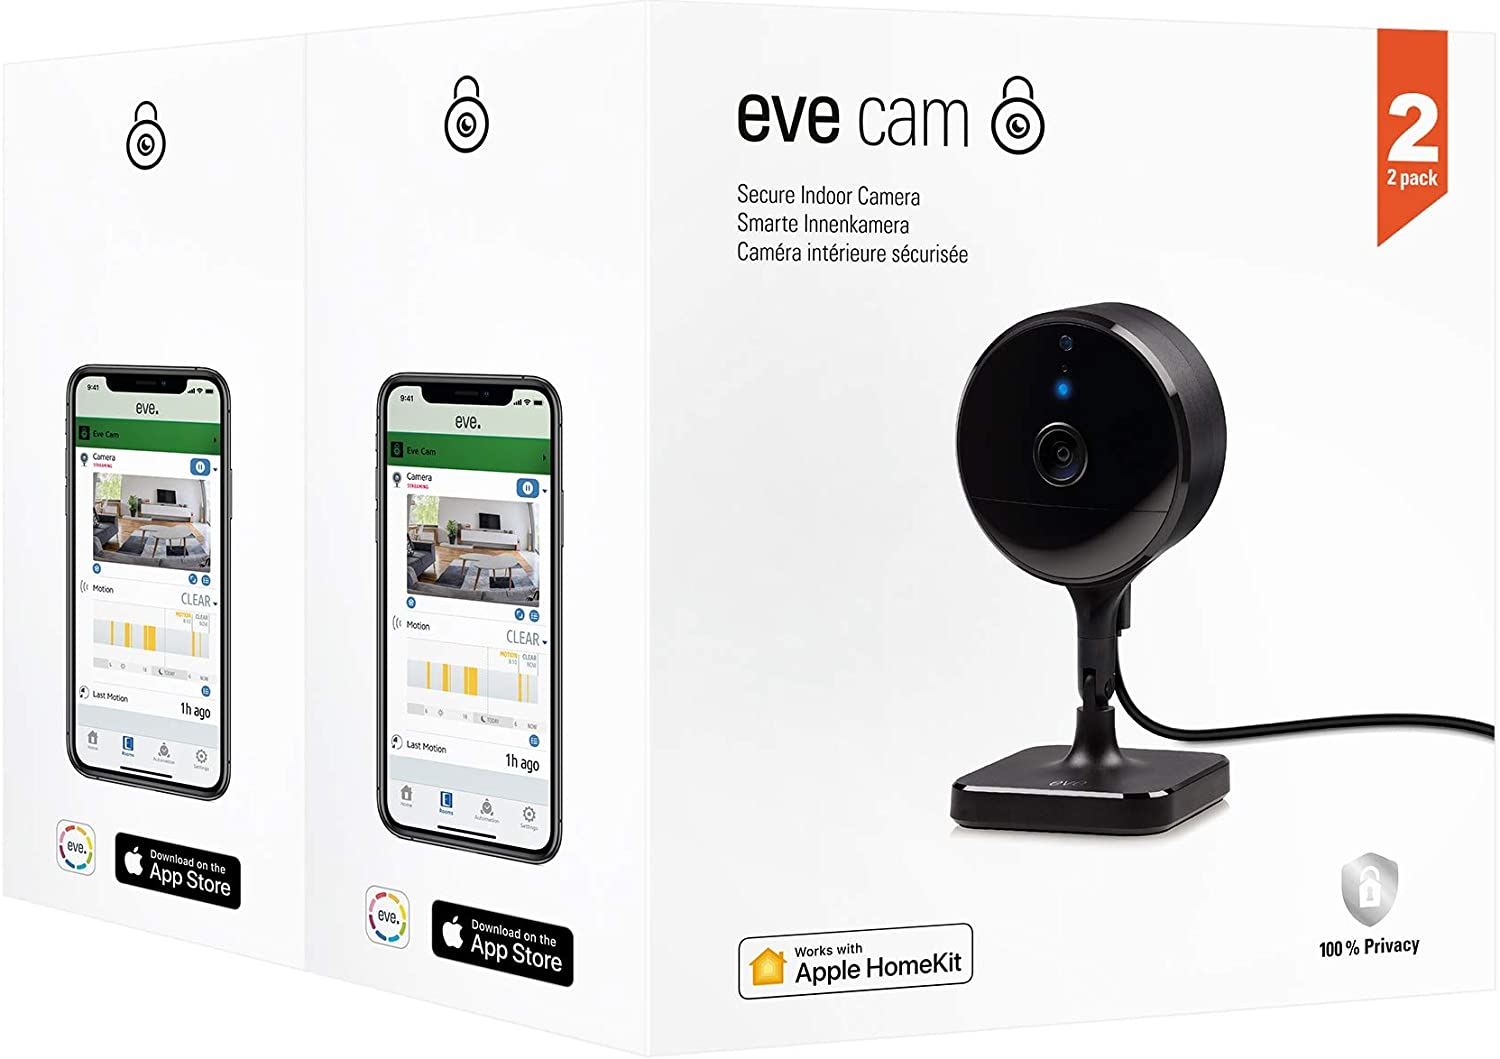 Eve Cam 2 Pack - Secure Indoor Camera, 100% Privacy, Apple HomeKit Secure Video, iPhone/iPad/Apple Watch Notifications, Motion Sensor, Microphone and Speaker, People/Pet Recognition